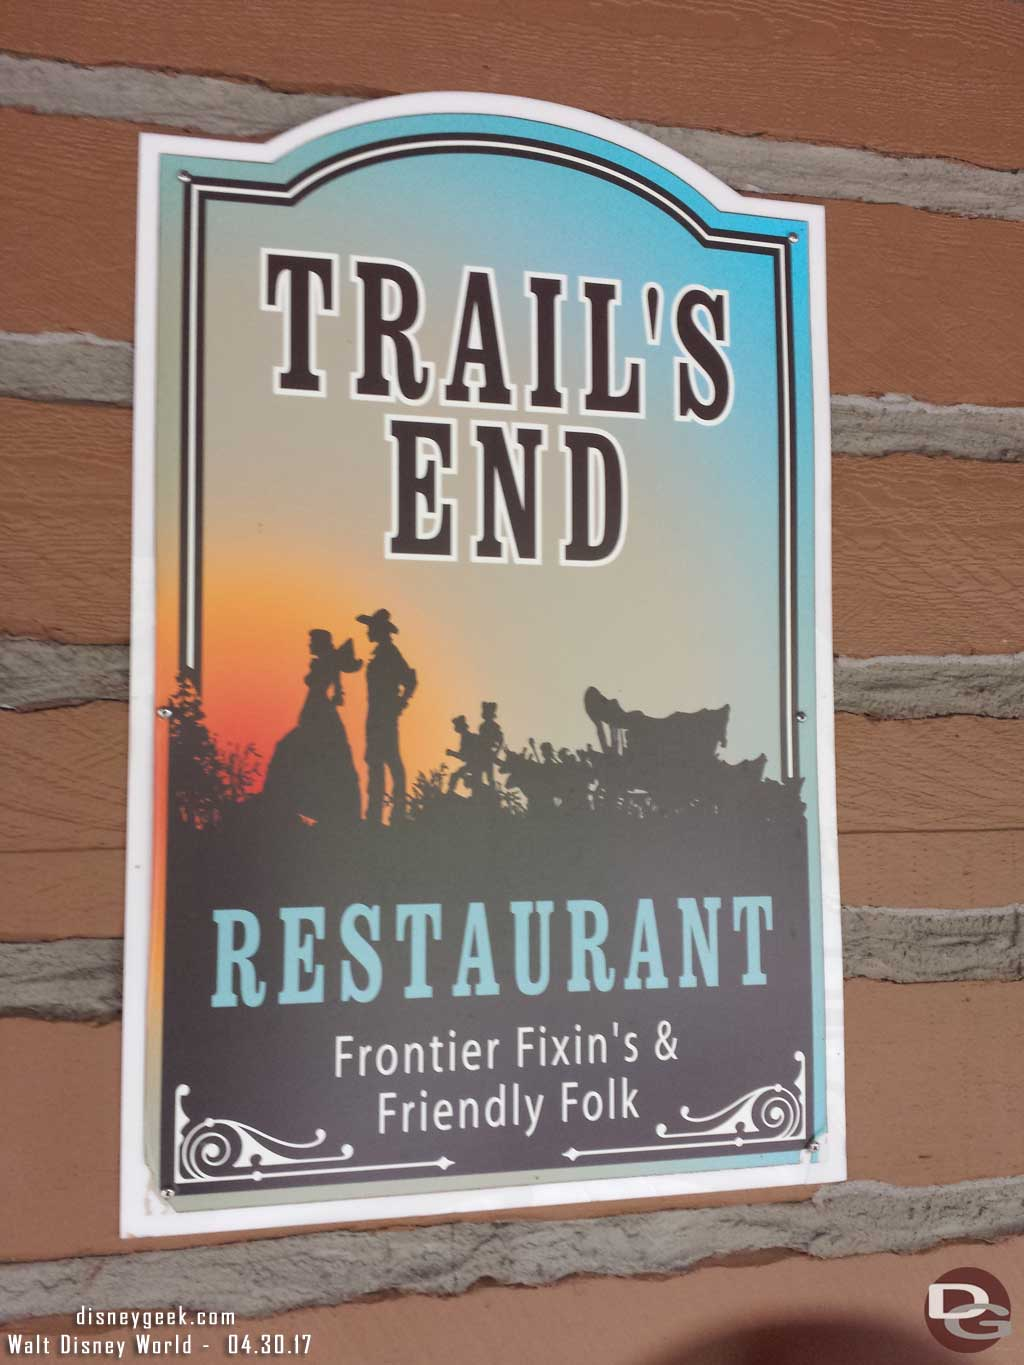 Dinner tonight.. a favorite - Trail's End